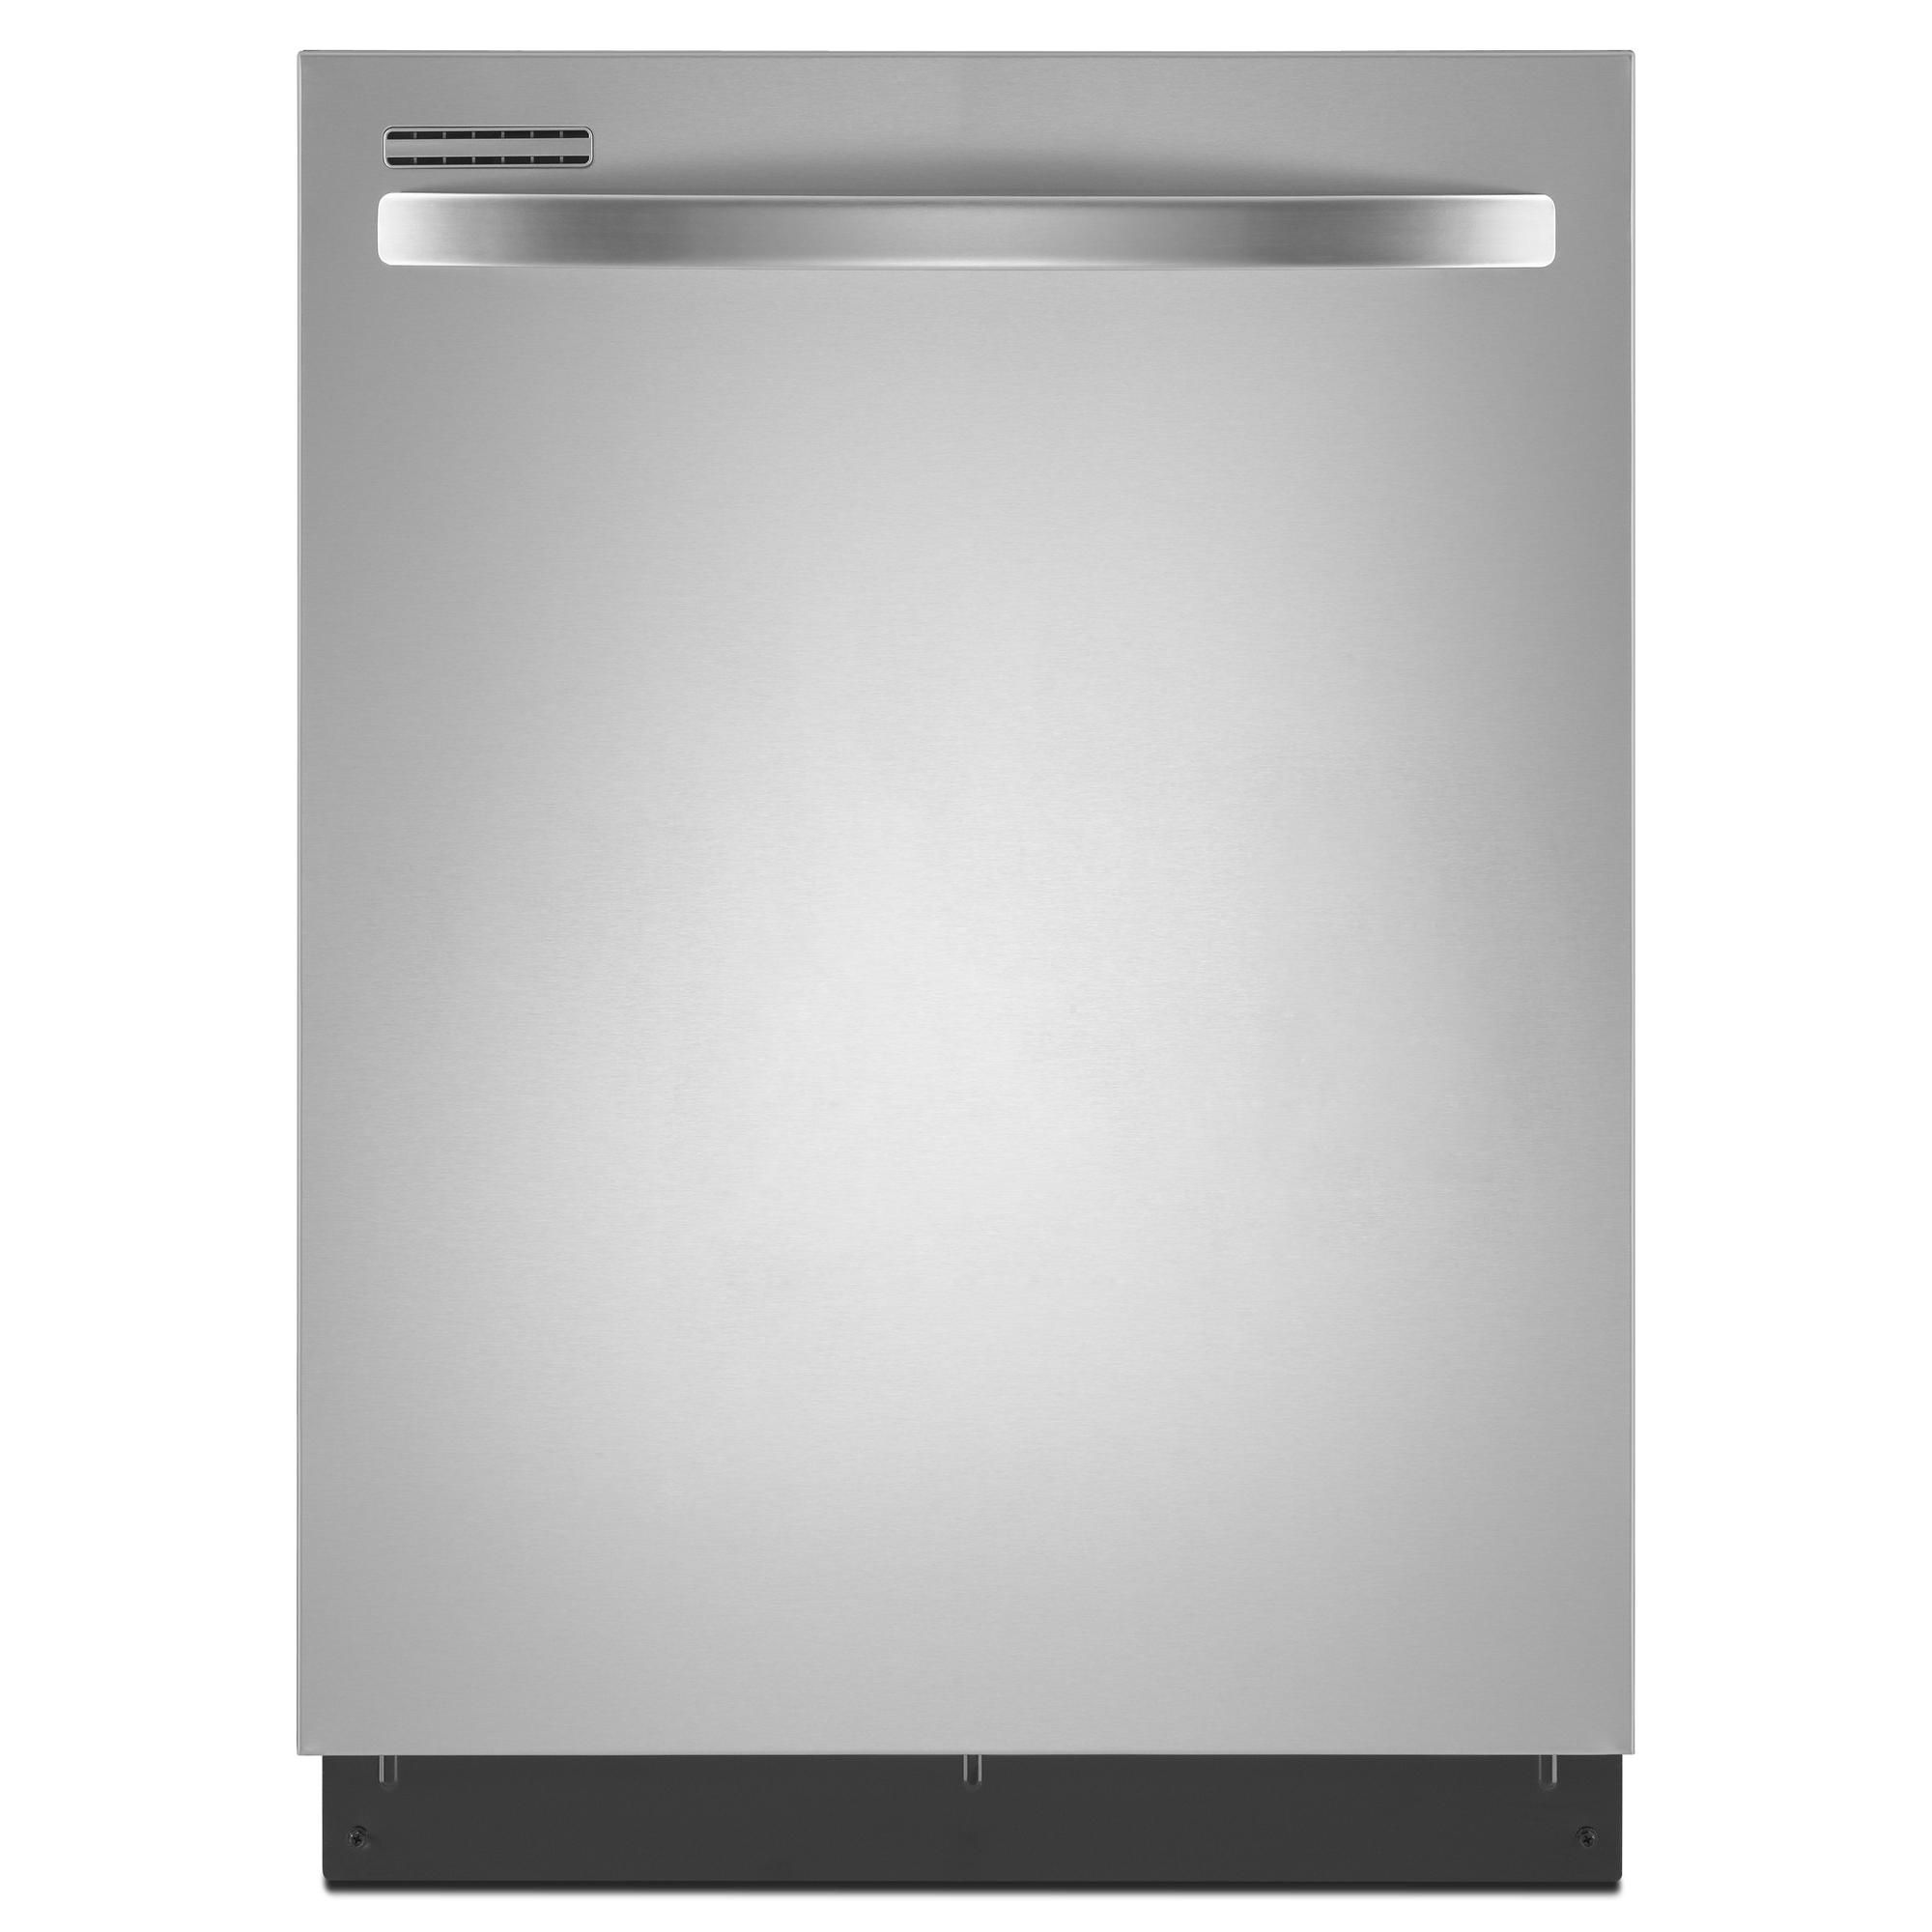 12413-24-Built-In-Dishwasher-w-SmartWash%C2%AE-HE-Cycle-Stainless-Steel